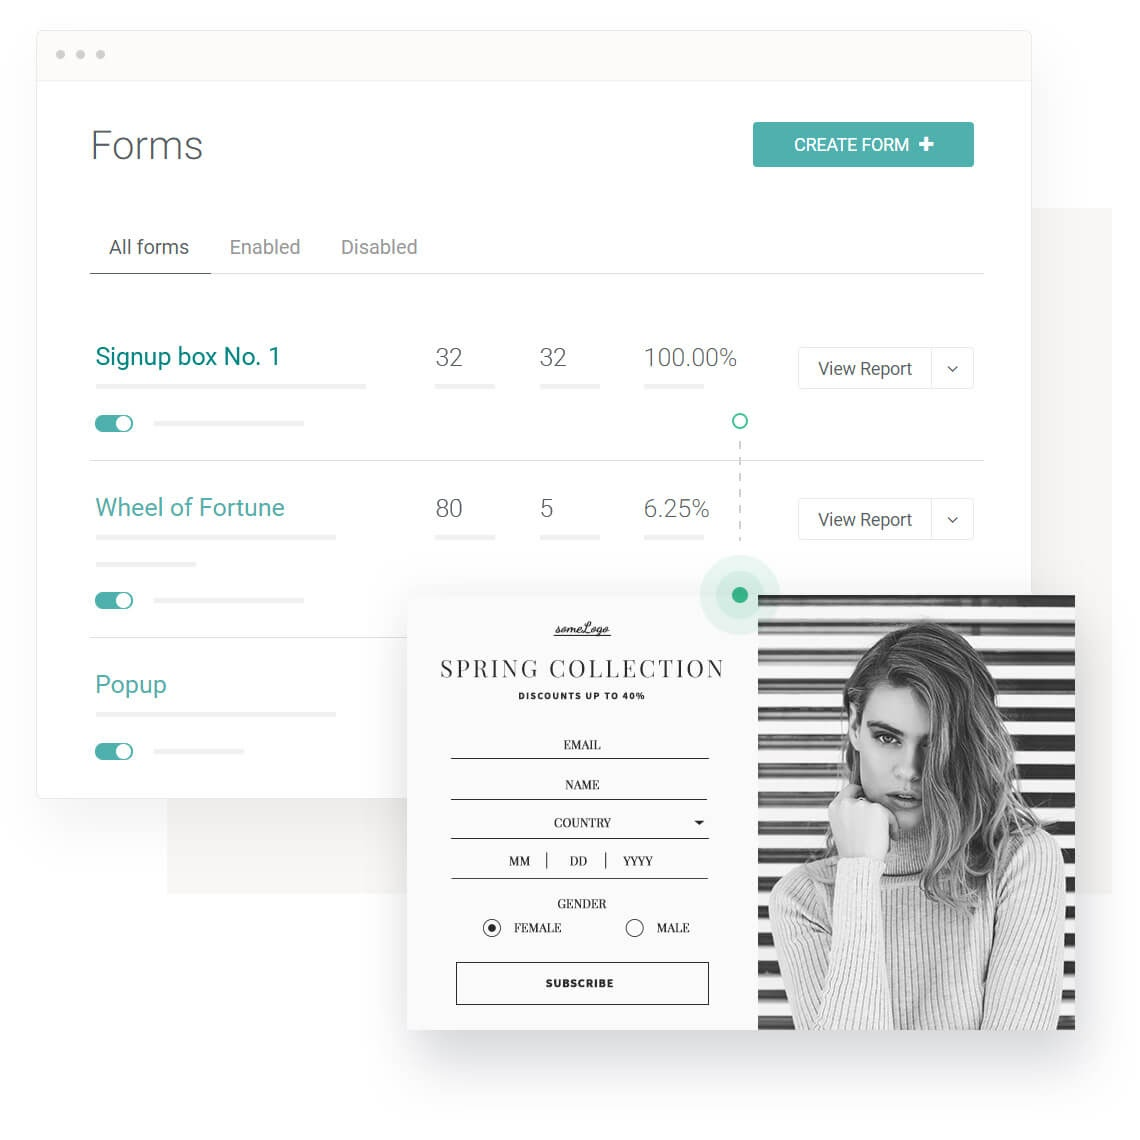 Features customizable forms